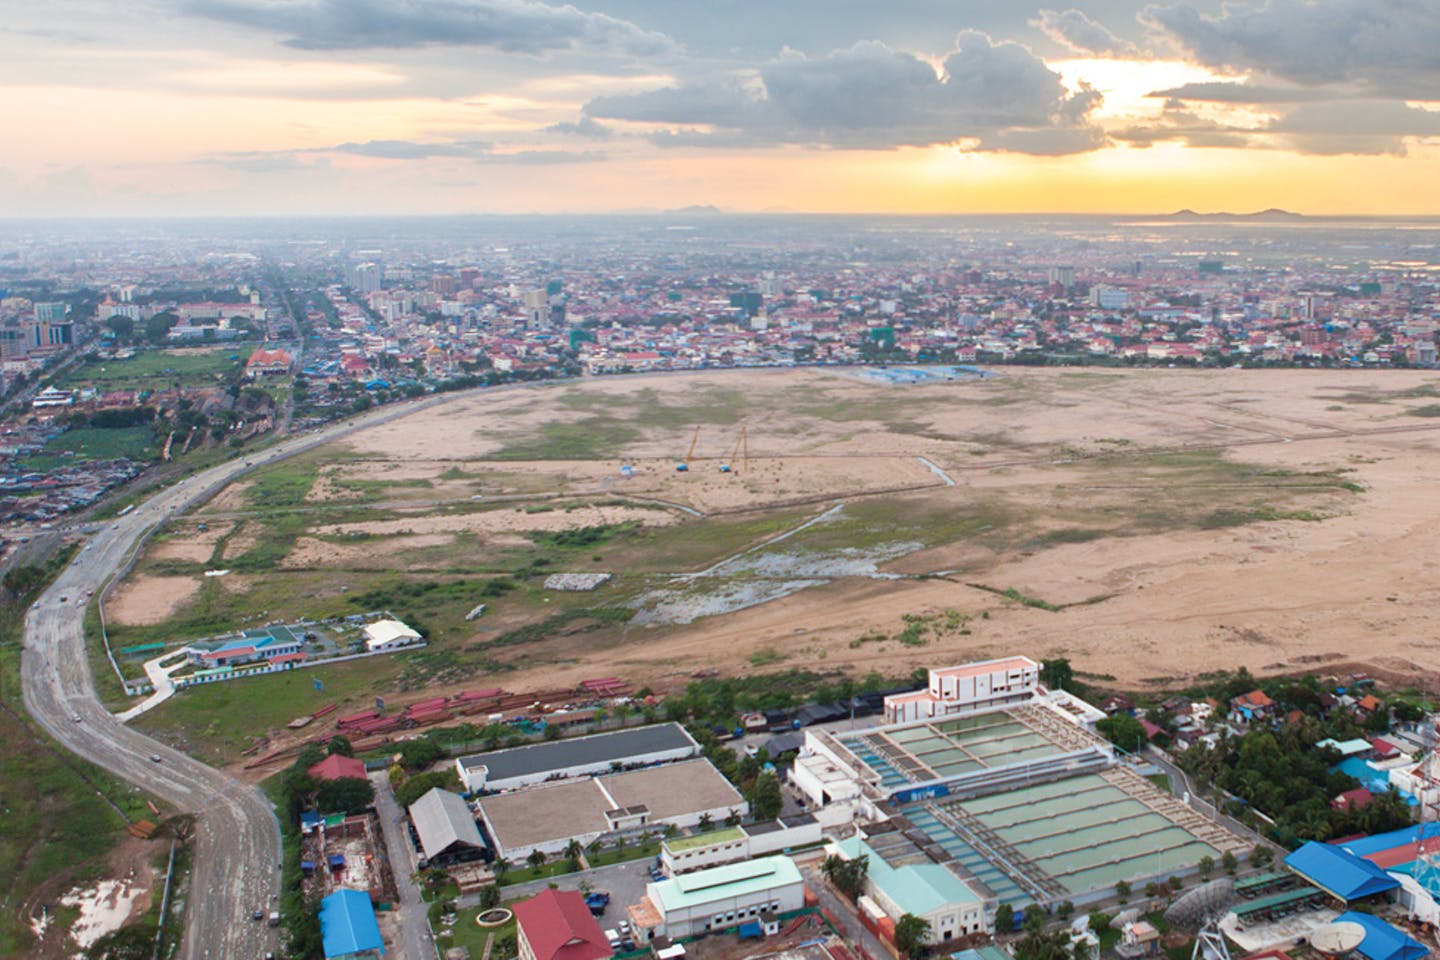 What used to be Boeung Kak lake in Phnom Penh before it was filled in.